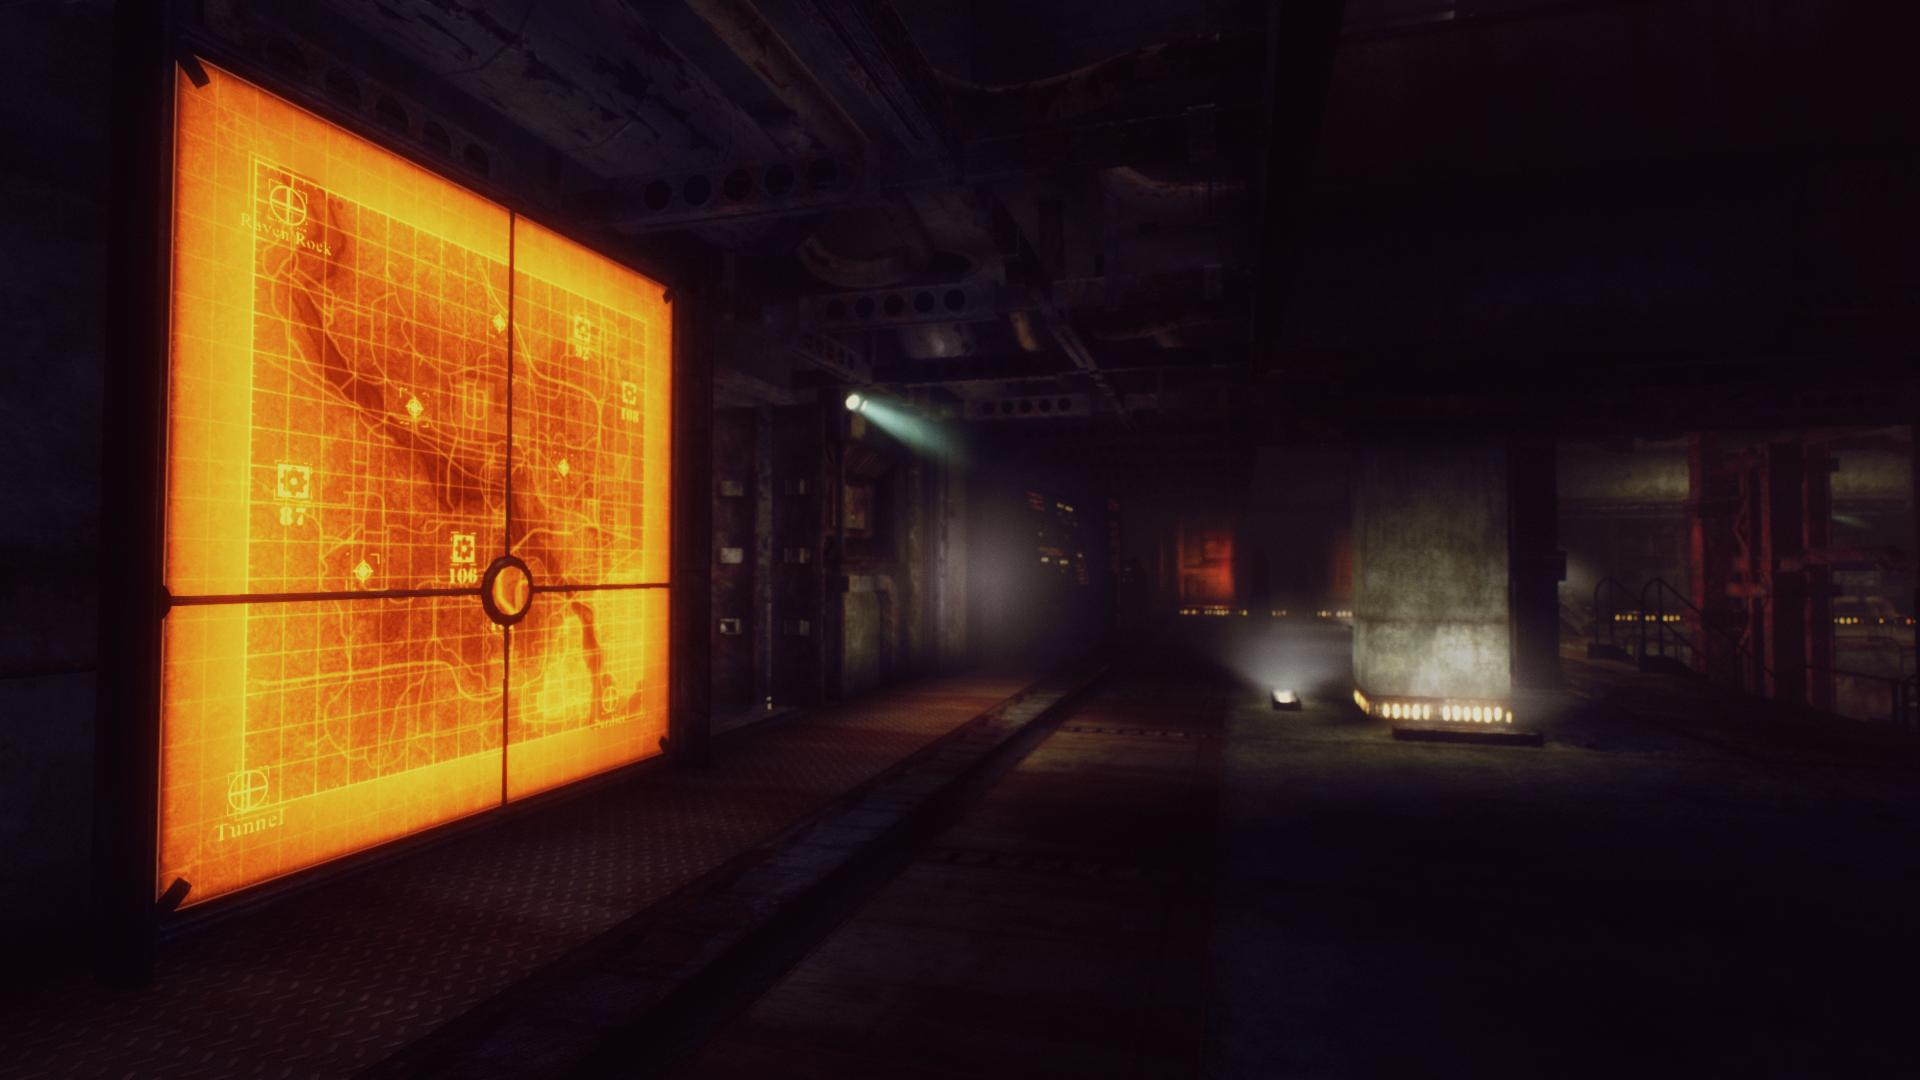 Fallout 4: The Wait Got A Little Easier With These Astounding Modded Fallout 3 Screens